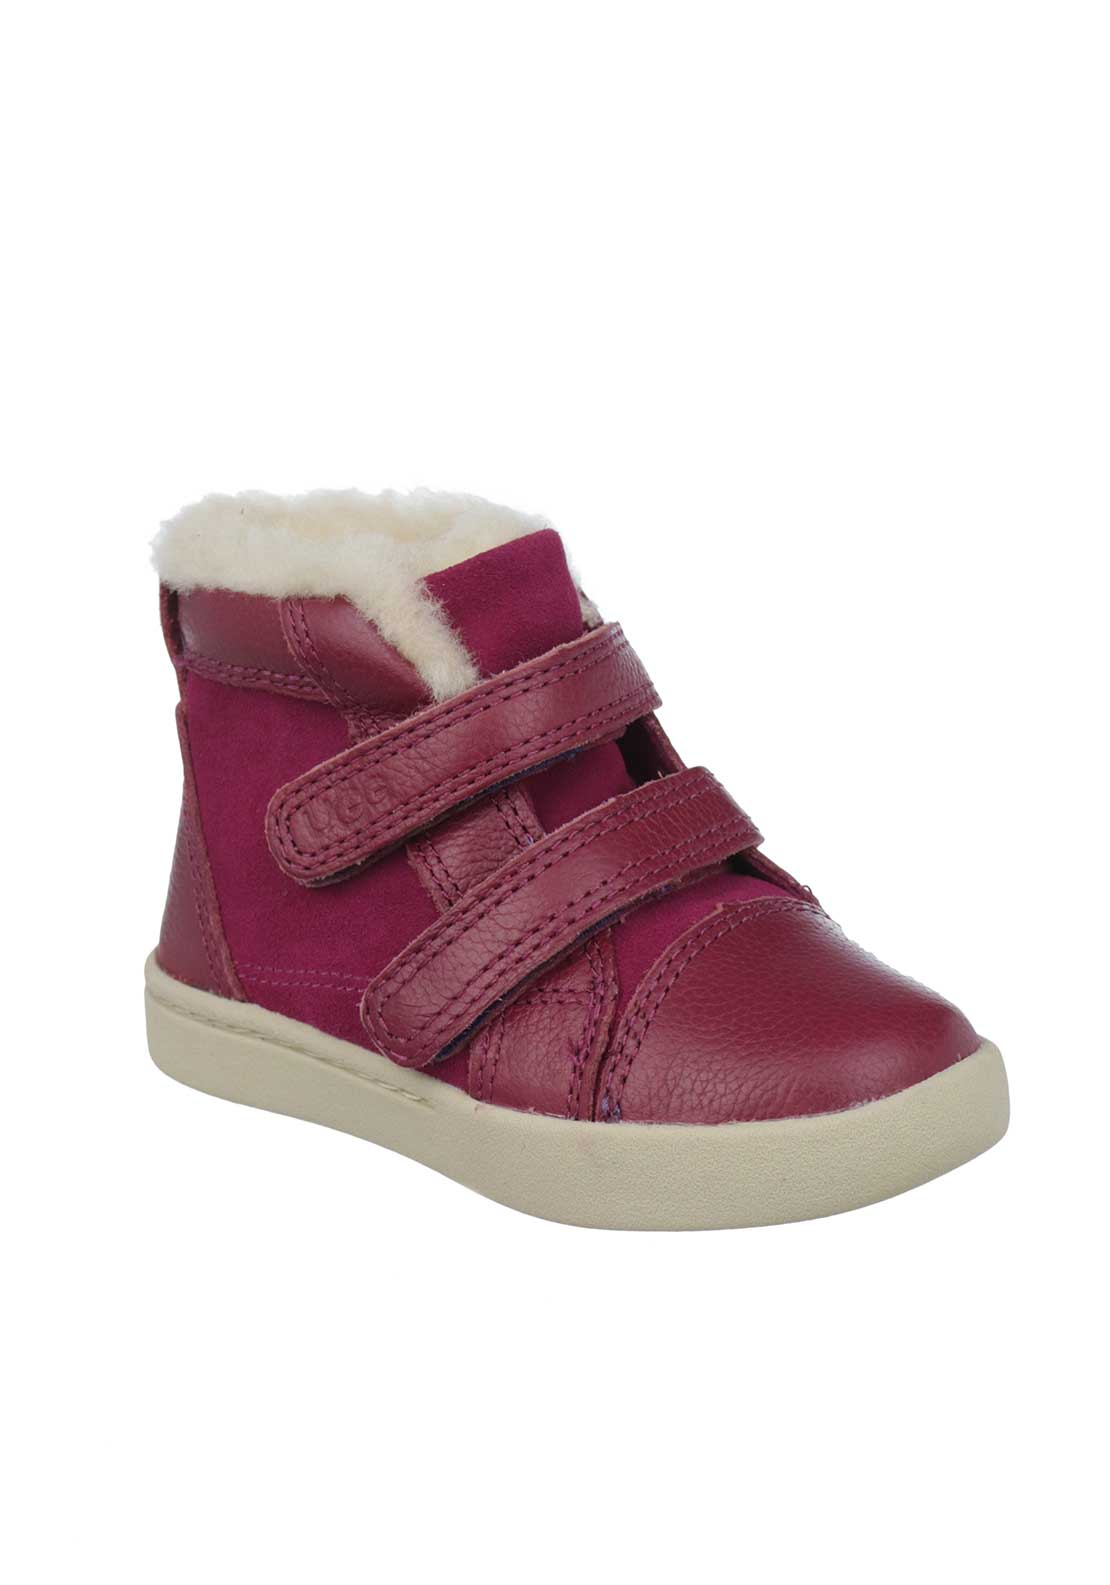 UGG Australia Baby Girls Rennon Leather Velcro Strap Boots, Victorian Pink